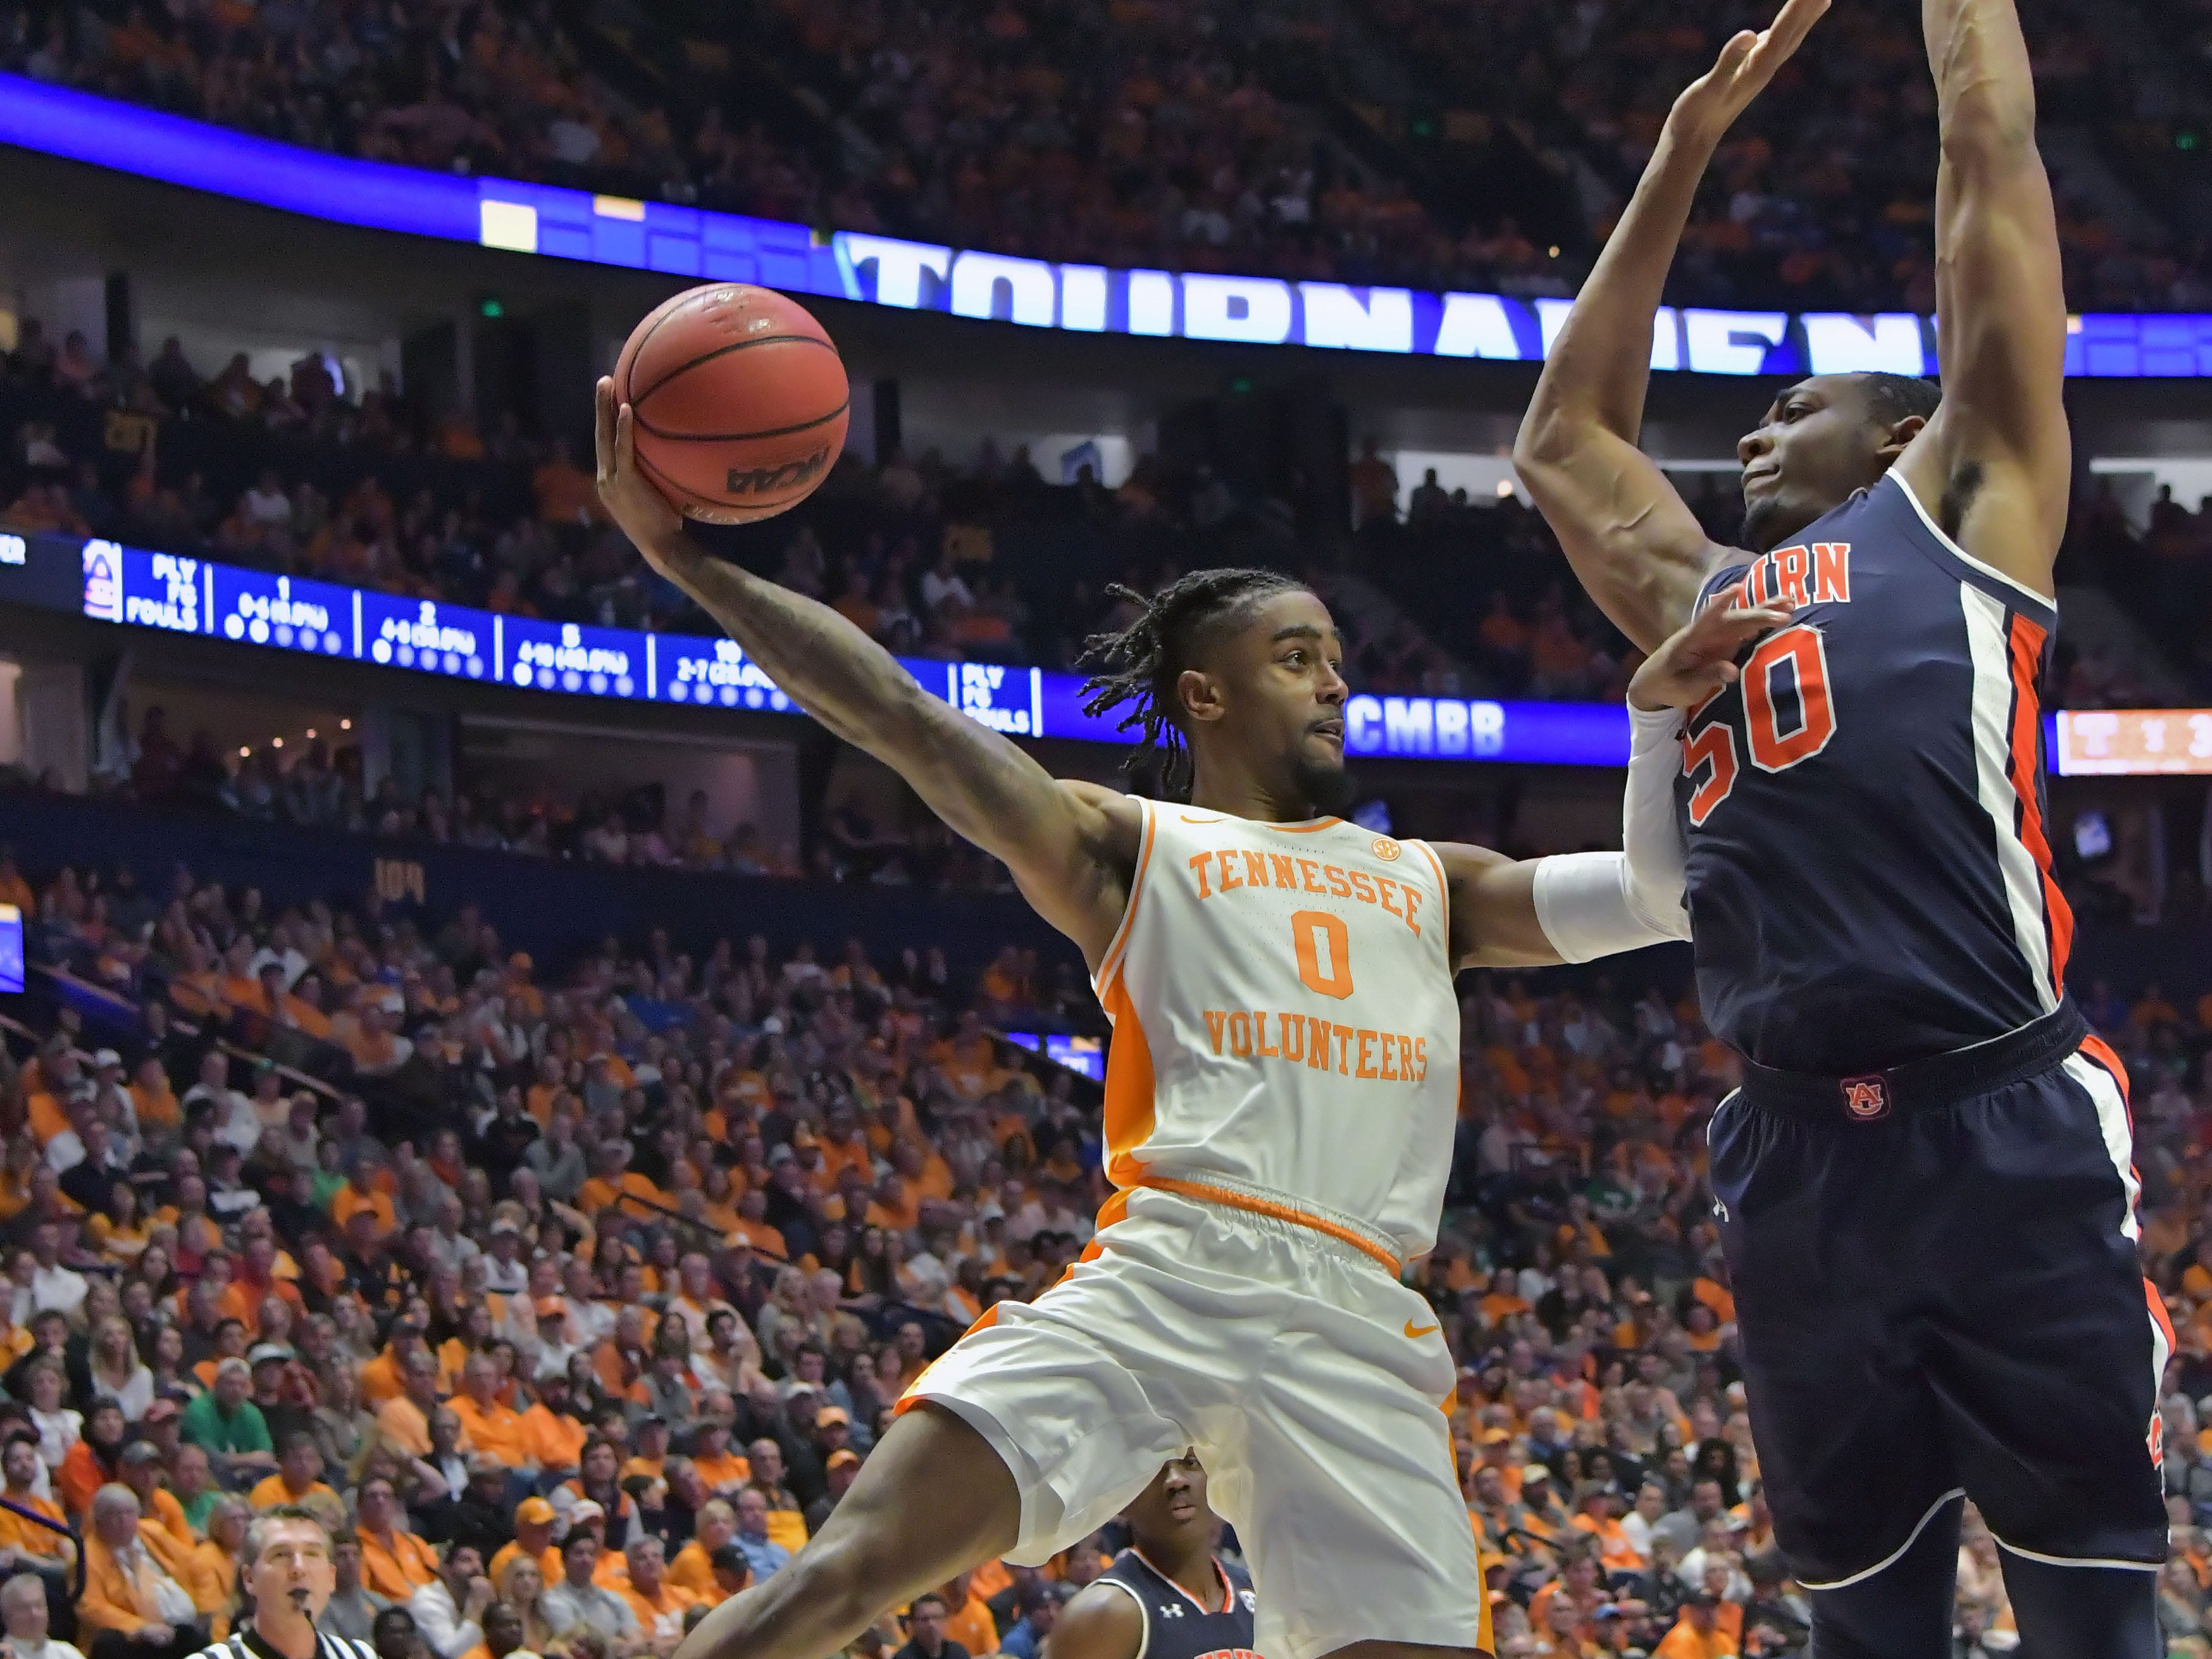 Mar 17, 2019; Nashville, TN, USA; Tennessee Volunteers guard Jordan Bone (0) passes against Auburn Tigers center Austin Wiley (50) during the second half of the championship game in the SEC conference tournament at Bridgestone Arena. Auburn won 84-64. Mandatory Credit: Jim Brown-USA TODAY Sports